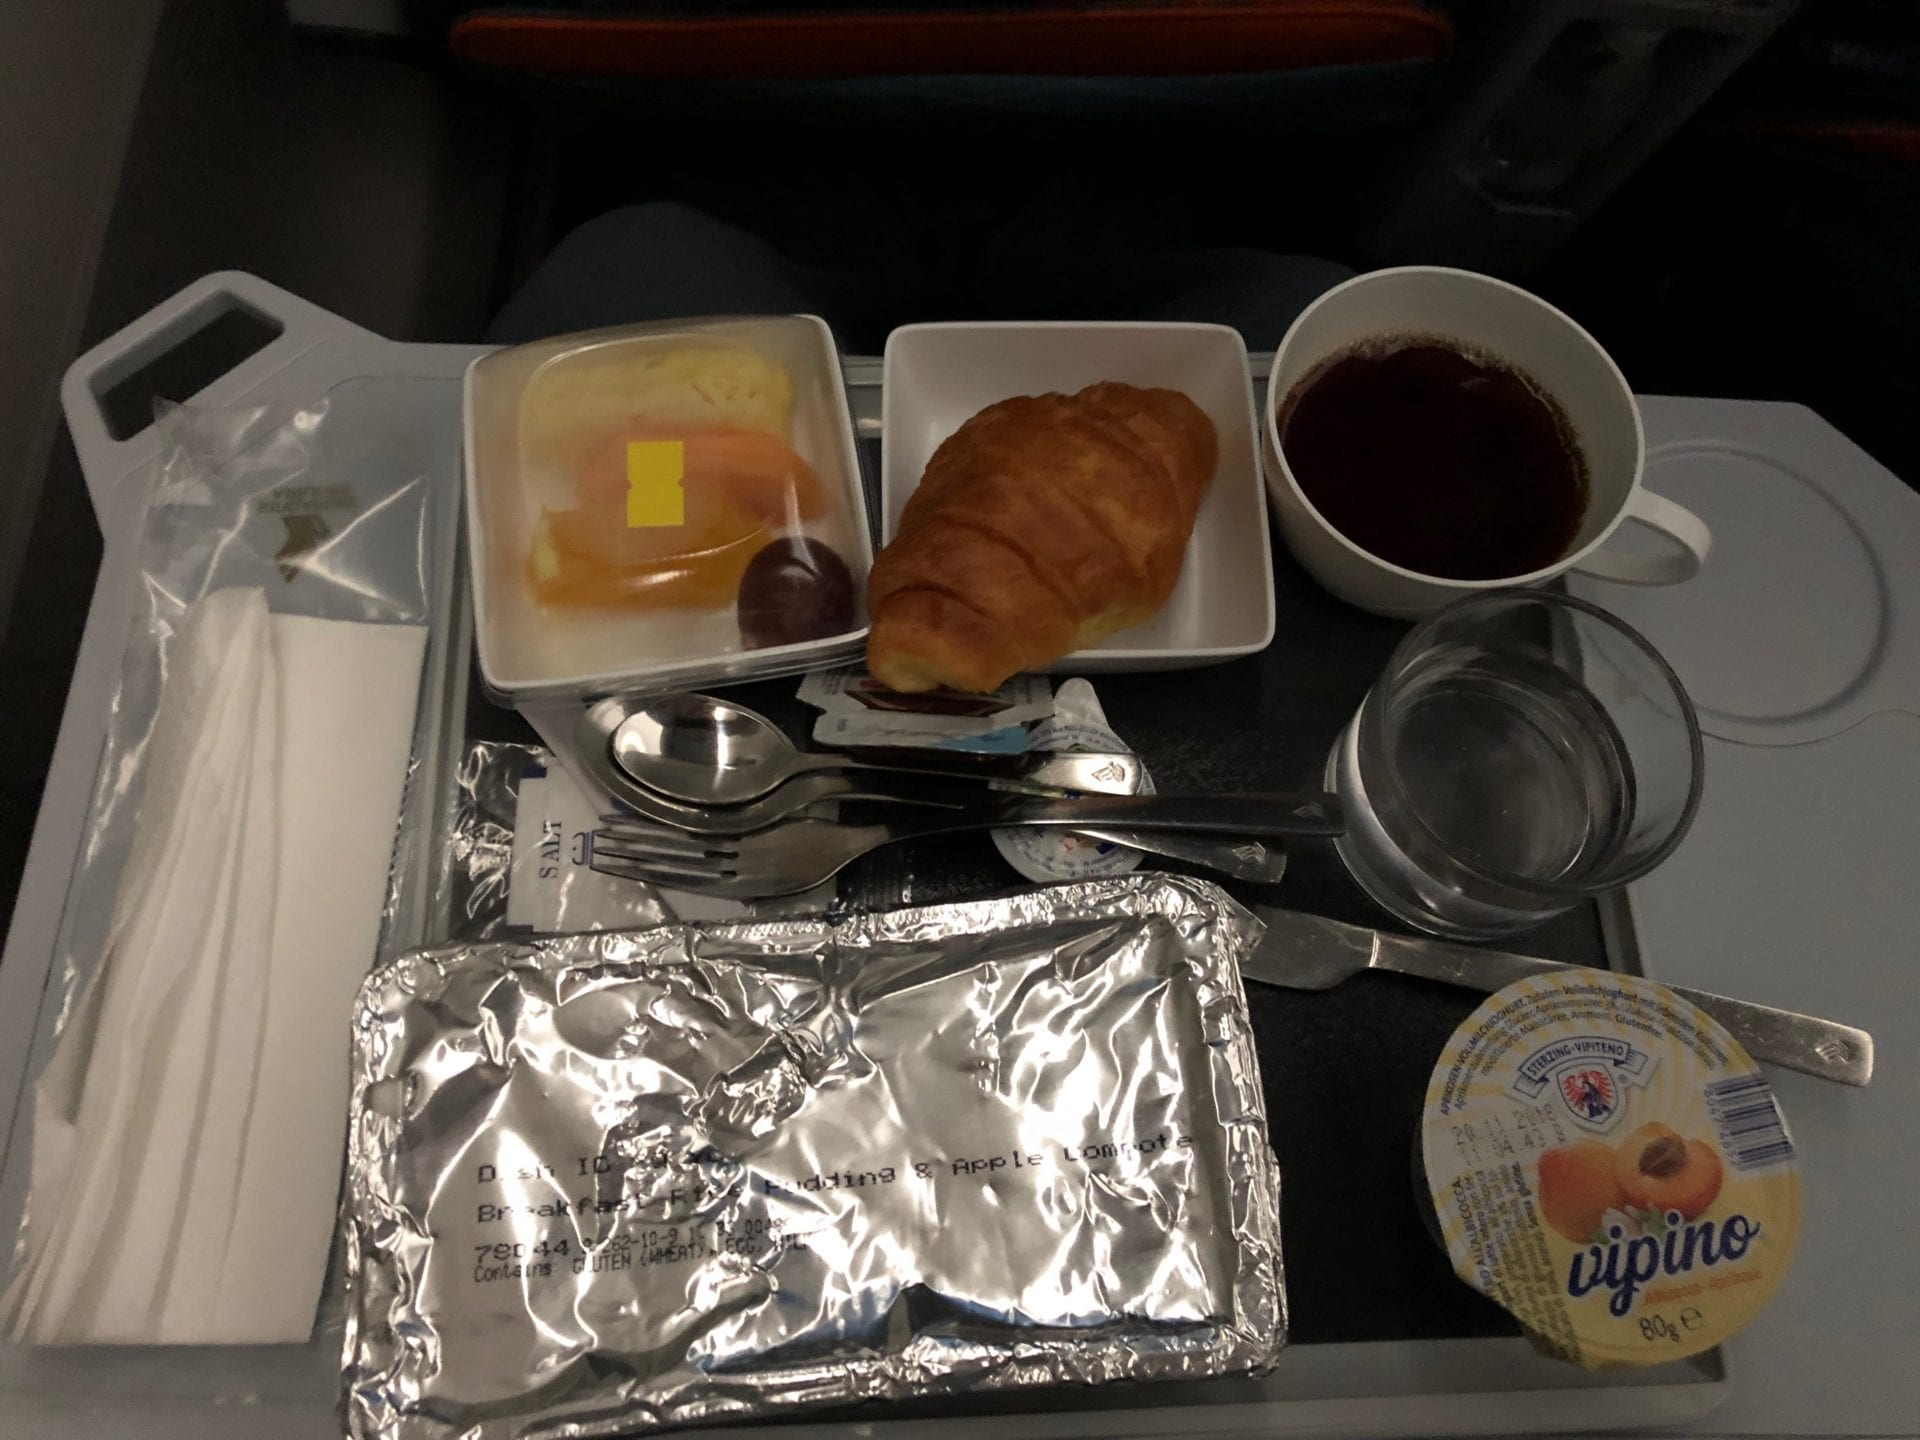 Singapore Airlines Premium Economy Class Breakfast Service